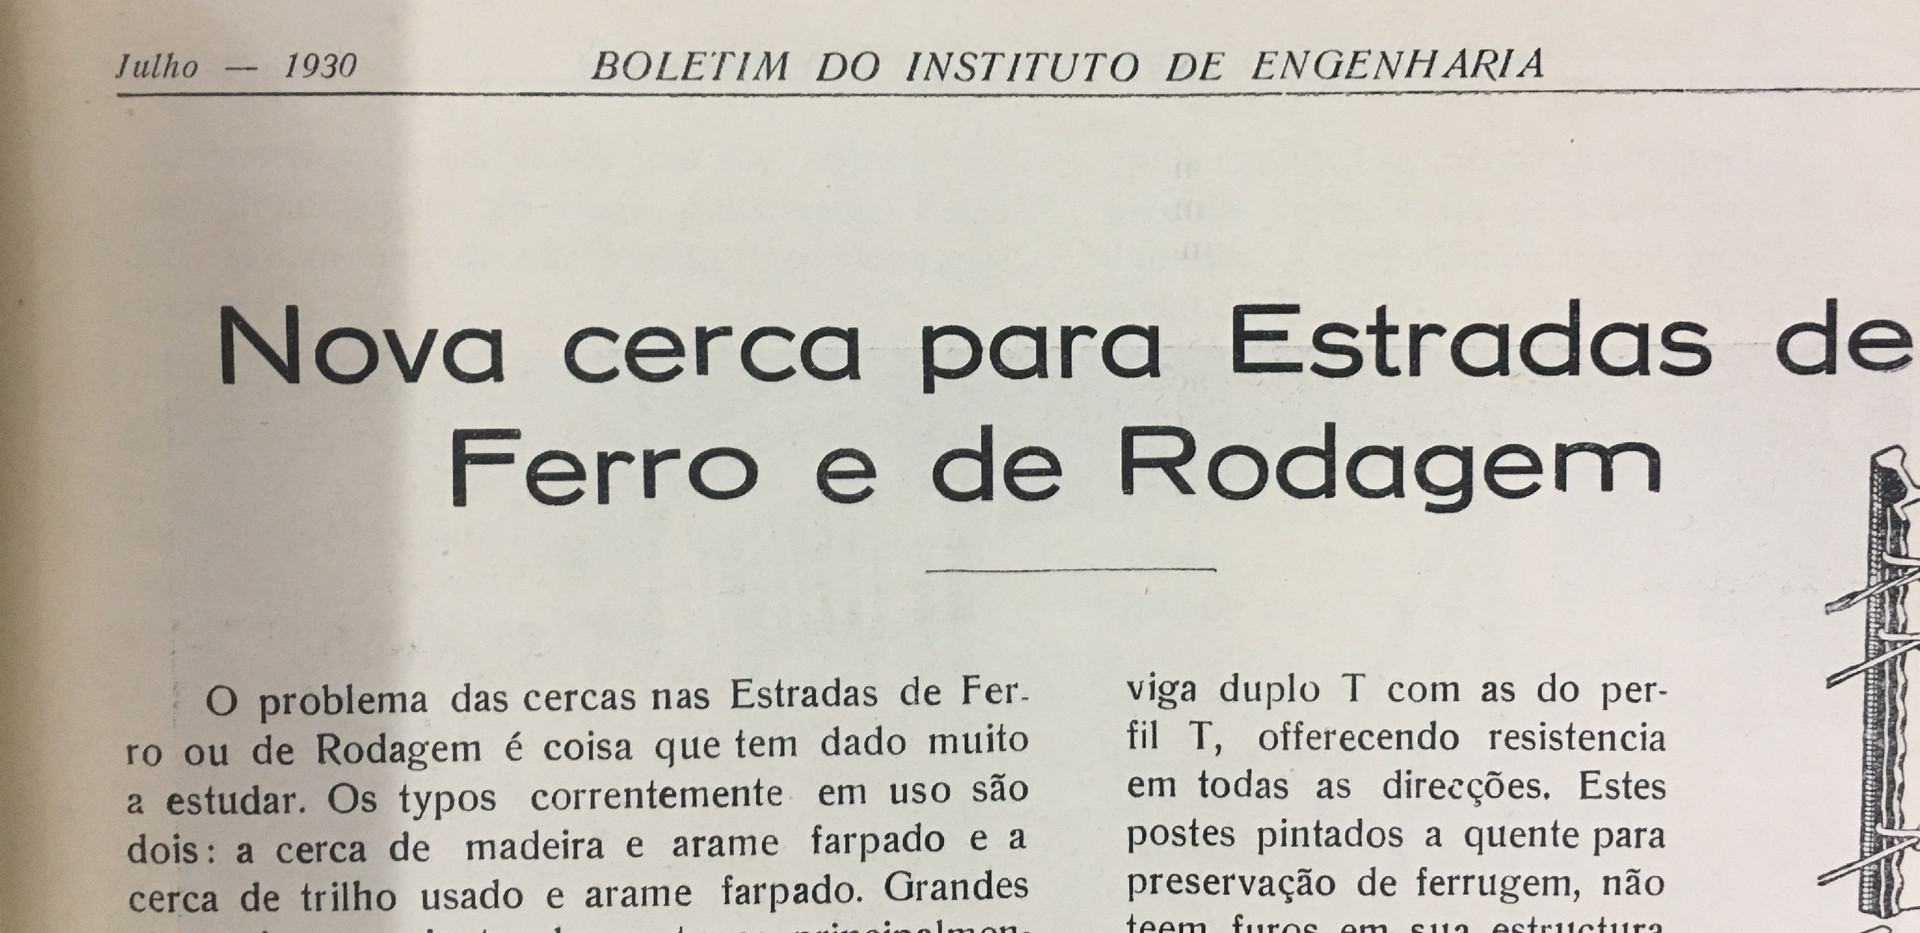 Exemplo de material do acervo da biblioteca do IE